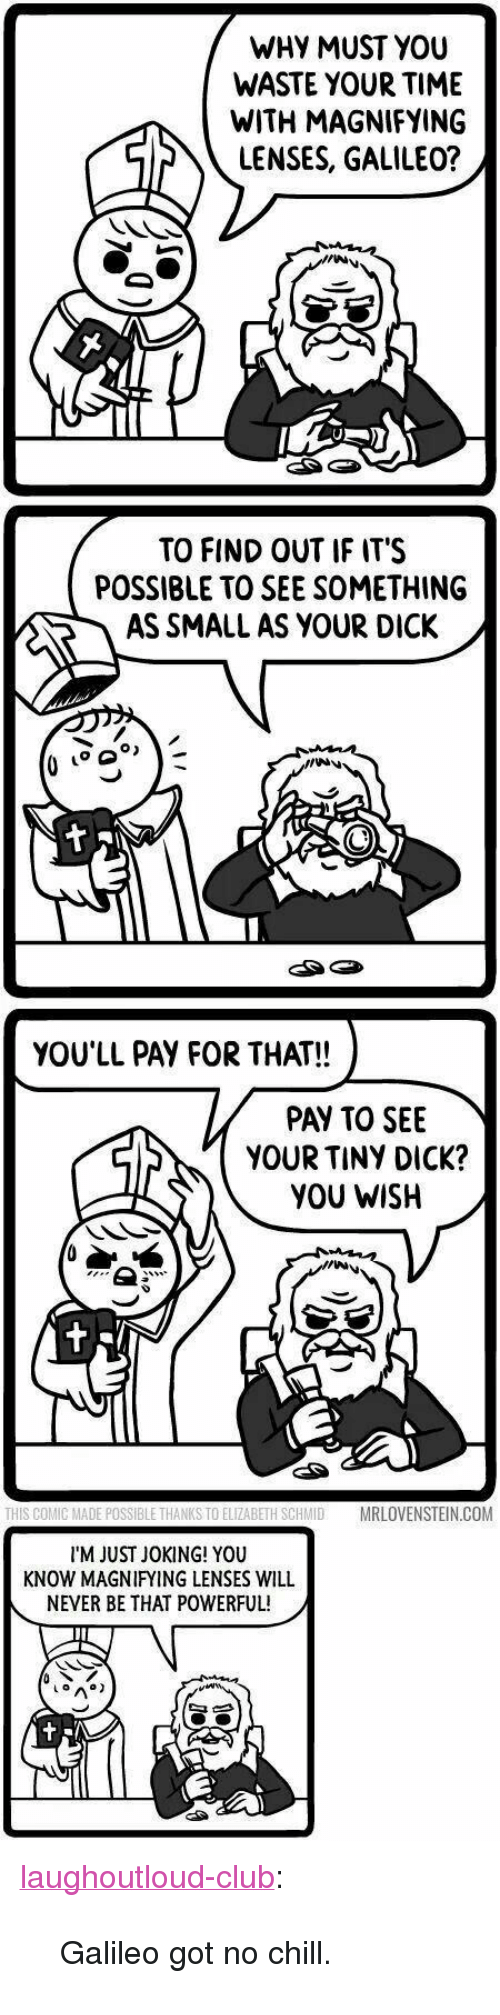 """Got No Chill: WHY MUST YOU  WASTE YOUR TIME  WITH MAGNIFYING  LENSES, GALILEO?  TO FIND OUT IF IT'S  POSSIBLE TO SEE SOMETHING  AS SMALL AS YOUR DICK /  go  YOU'LL PAY FOR THAT!!  PAY TO SEE  YOUR TINY DICK?  YOU WISH  THIS COMIC MADE POSSIBLE THANKS TO ELIZABETH SCHMIDMRLOVENSTEIN.COM  I'M JUST JOKING! YOU  KNOW MAGNIFYING LENSES WILL  NEVER BE THAT POWERFUL! <p><a href=""""http://laughoutloud-club.tumblr.com/post/160370753925/galileo-got-no-chill"""" class=""""tumblr_blog"""">laughoutloud-club</a>:</p>  <blockquote><p>Galileo got no chill.</p></blockquote>"""